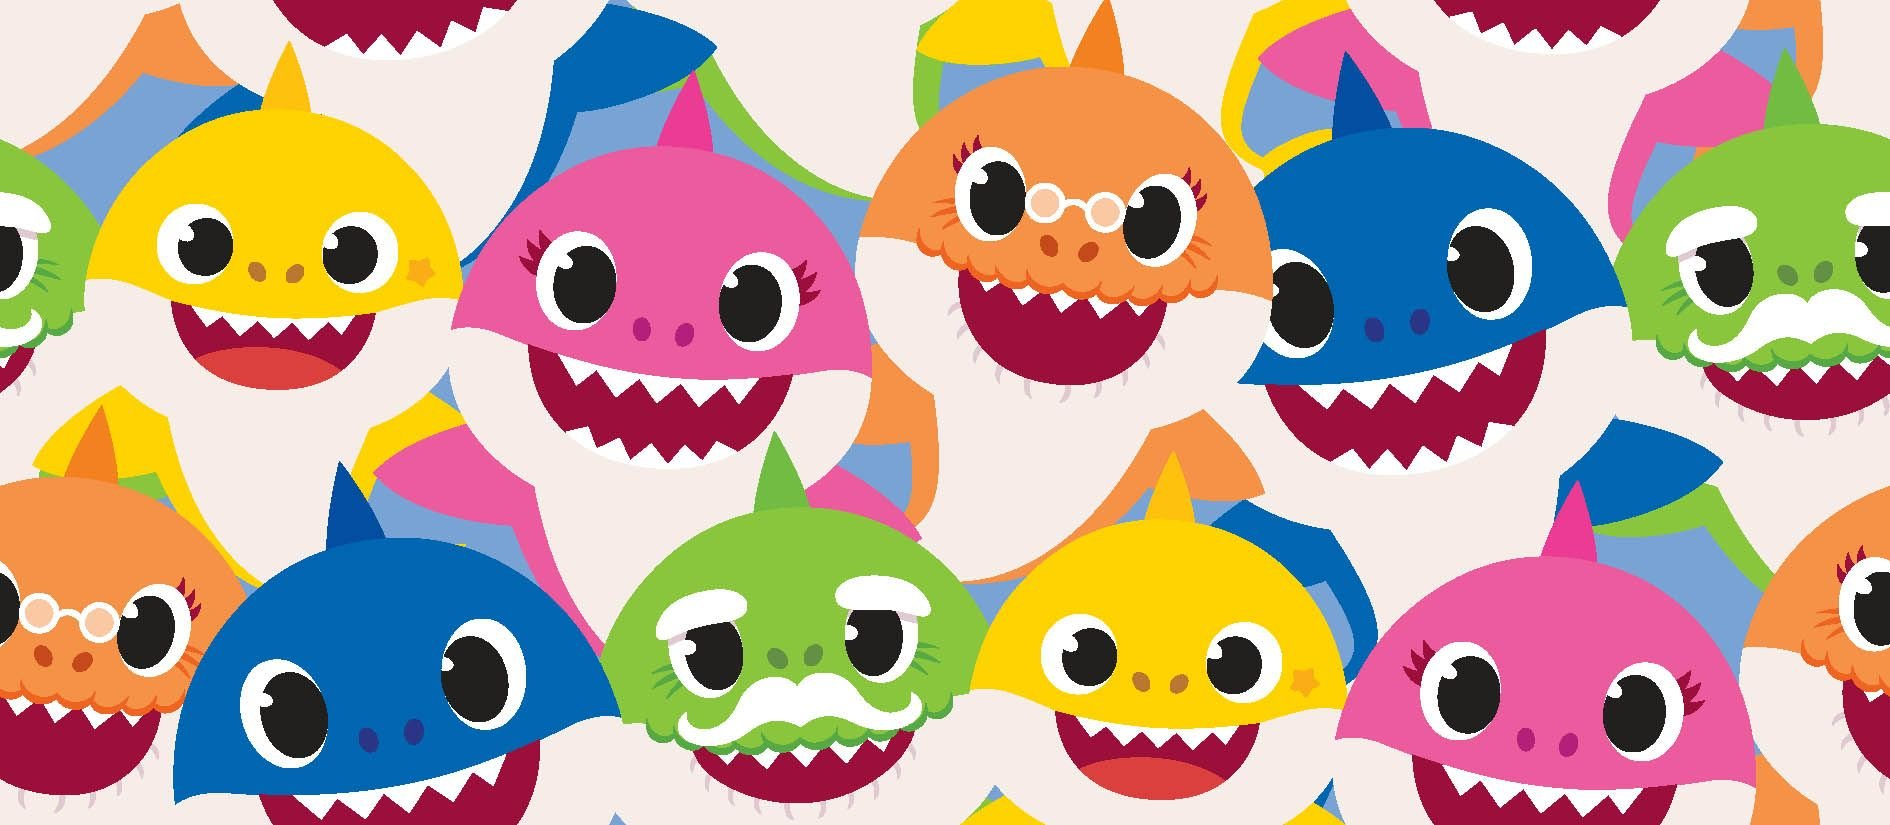 SC-Nickelodeon 73760-A620715 Baby Shark Family Packed